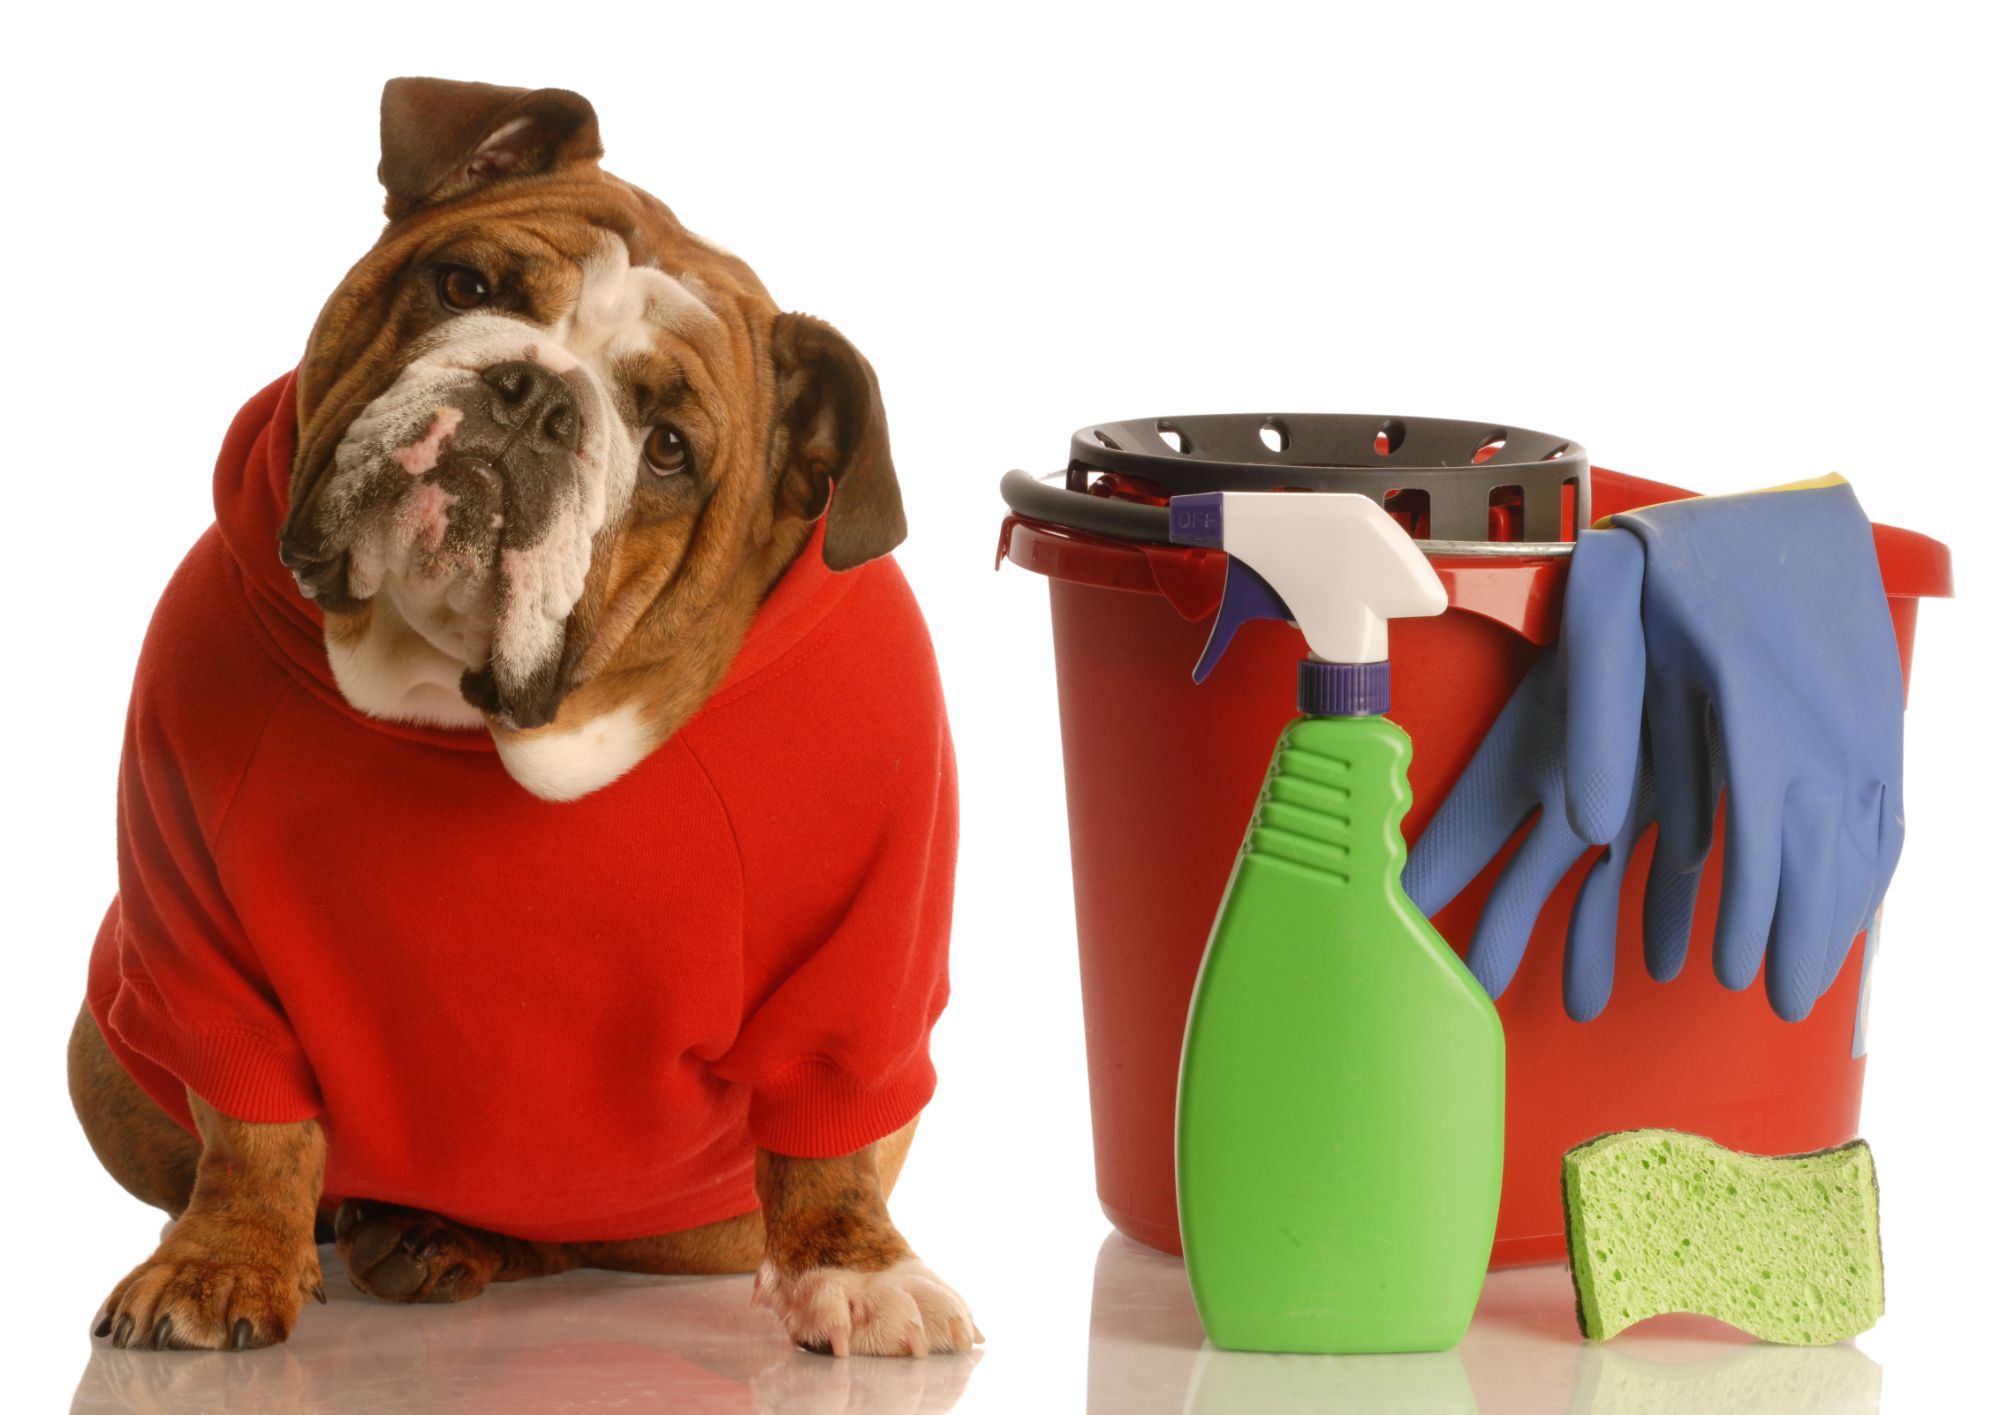 Dog with cleaning equipment & supplies